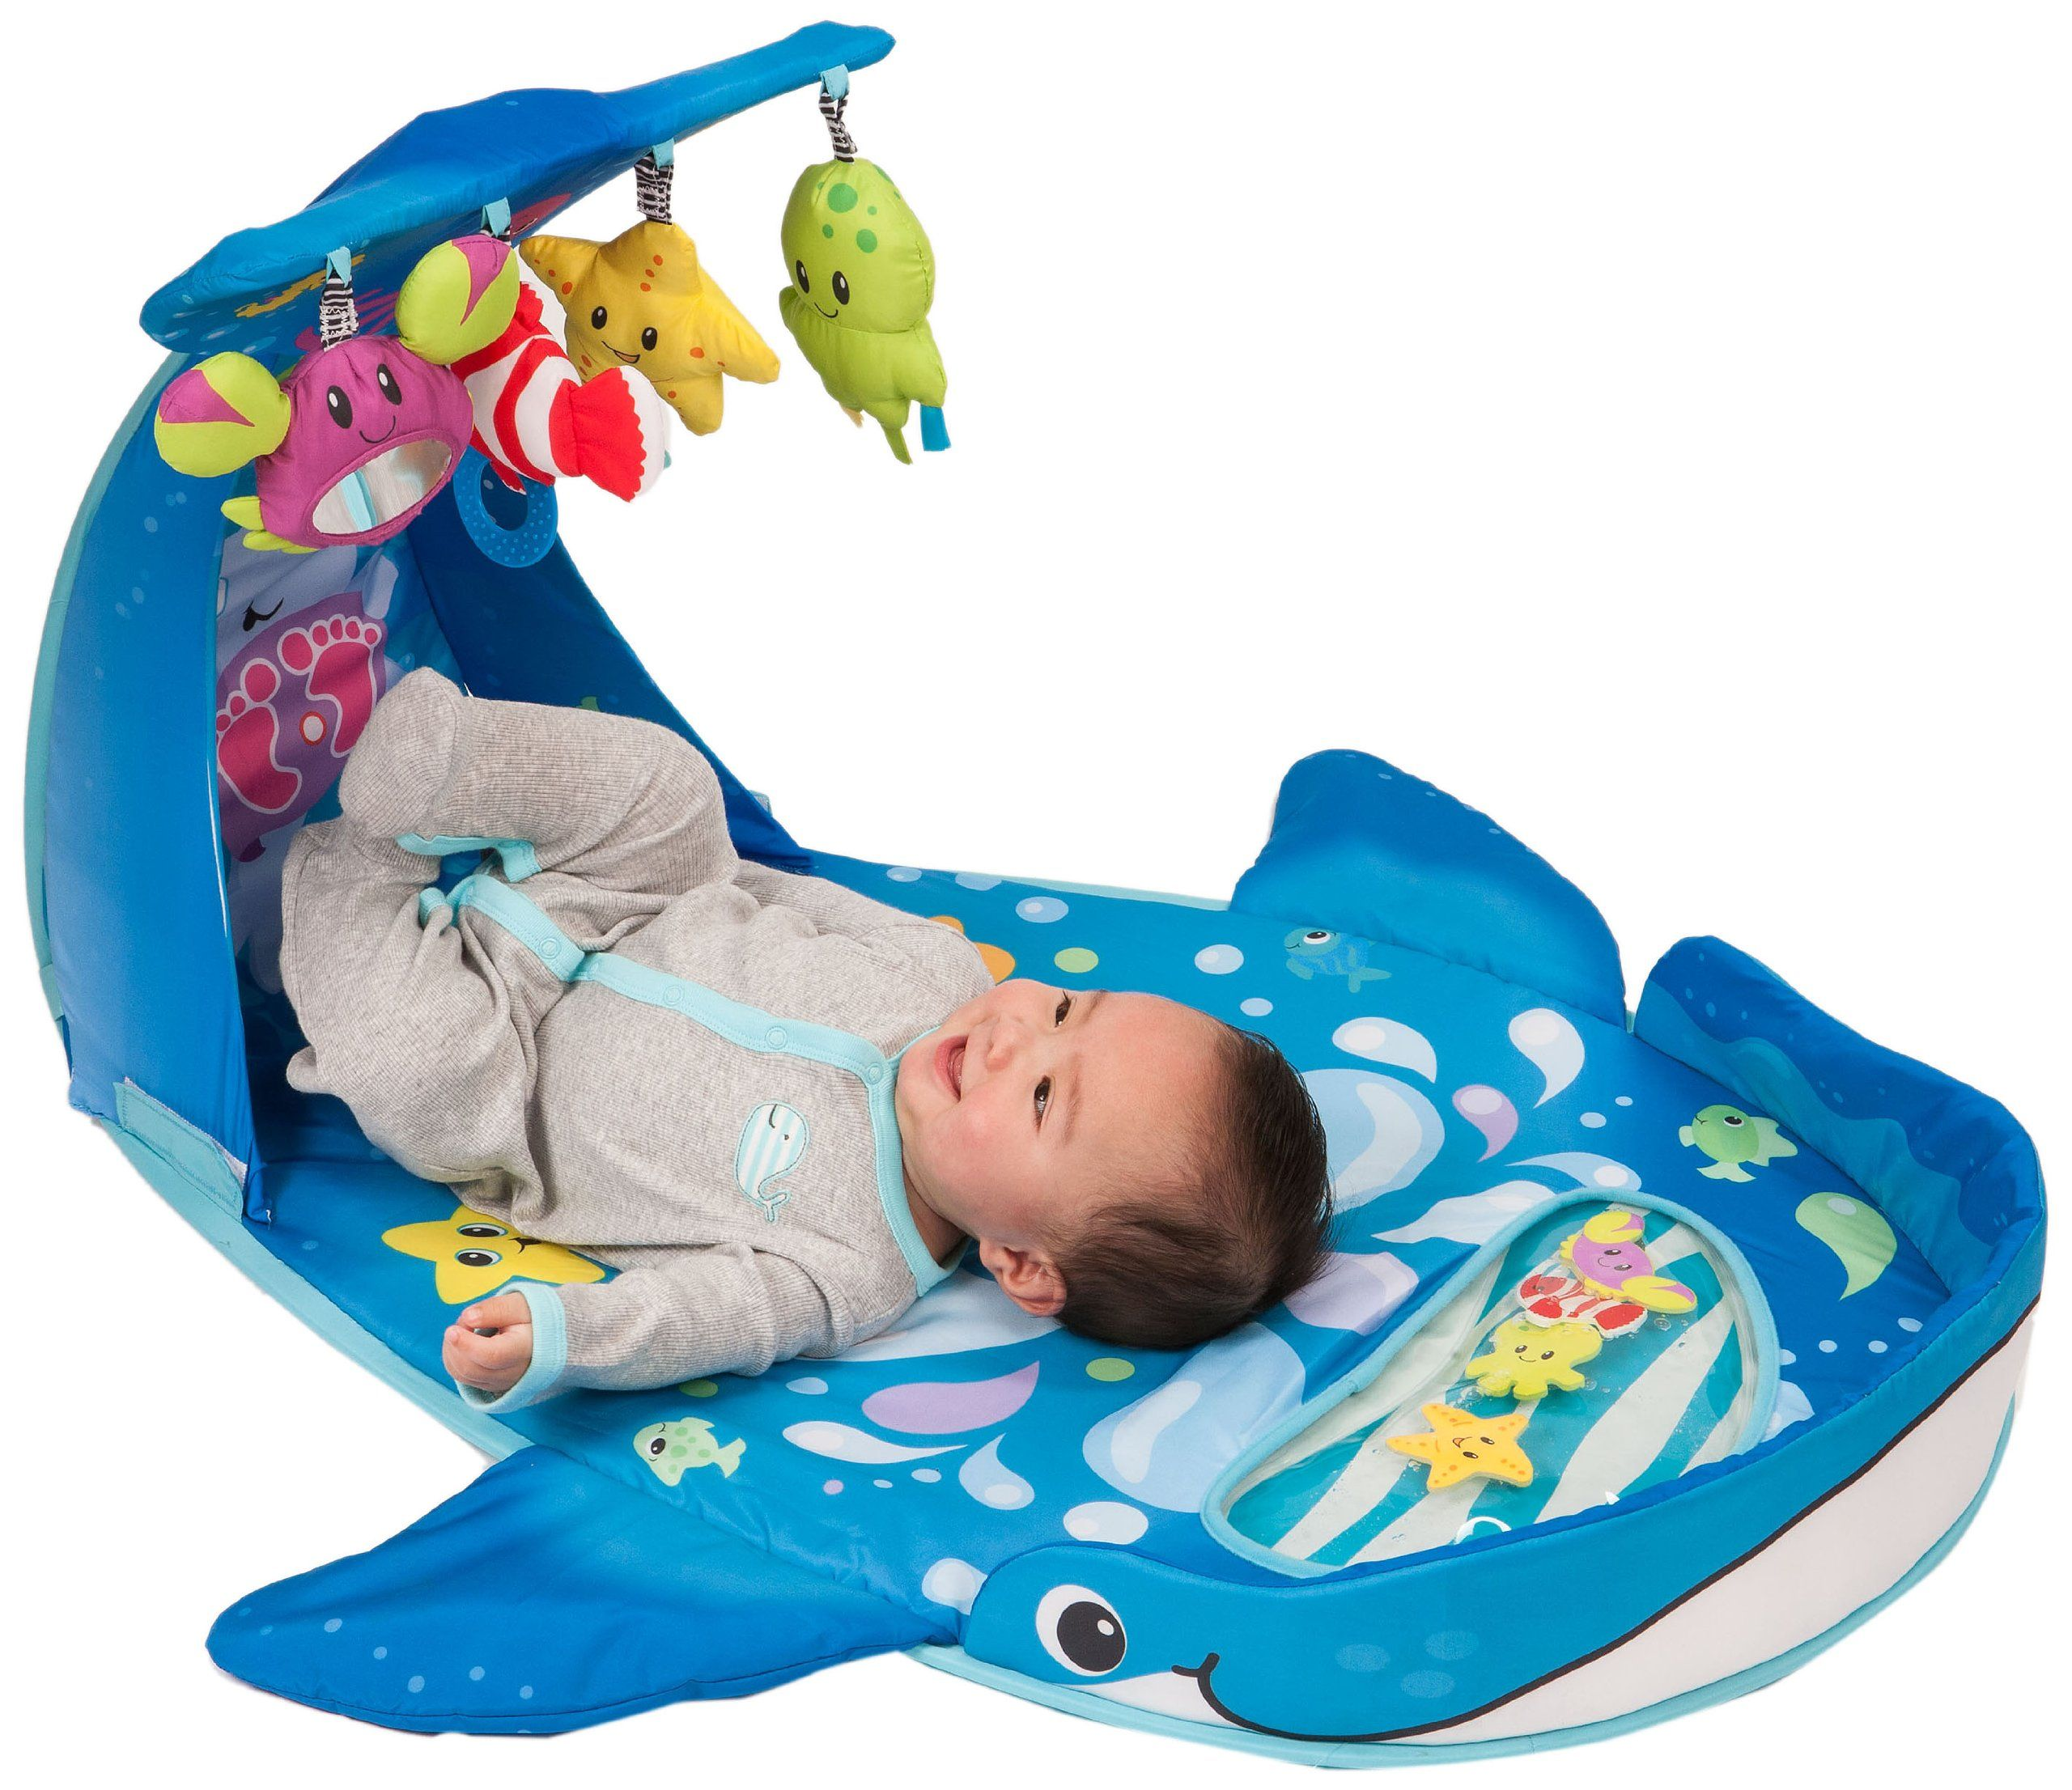 Amazon Infantino Wonder Whale Kicks and Giggles Gym Early